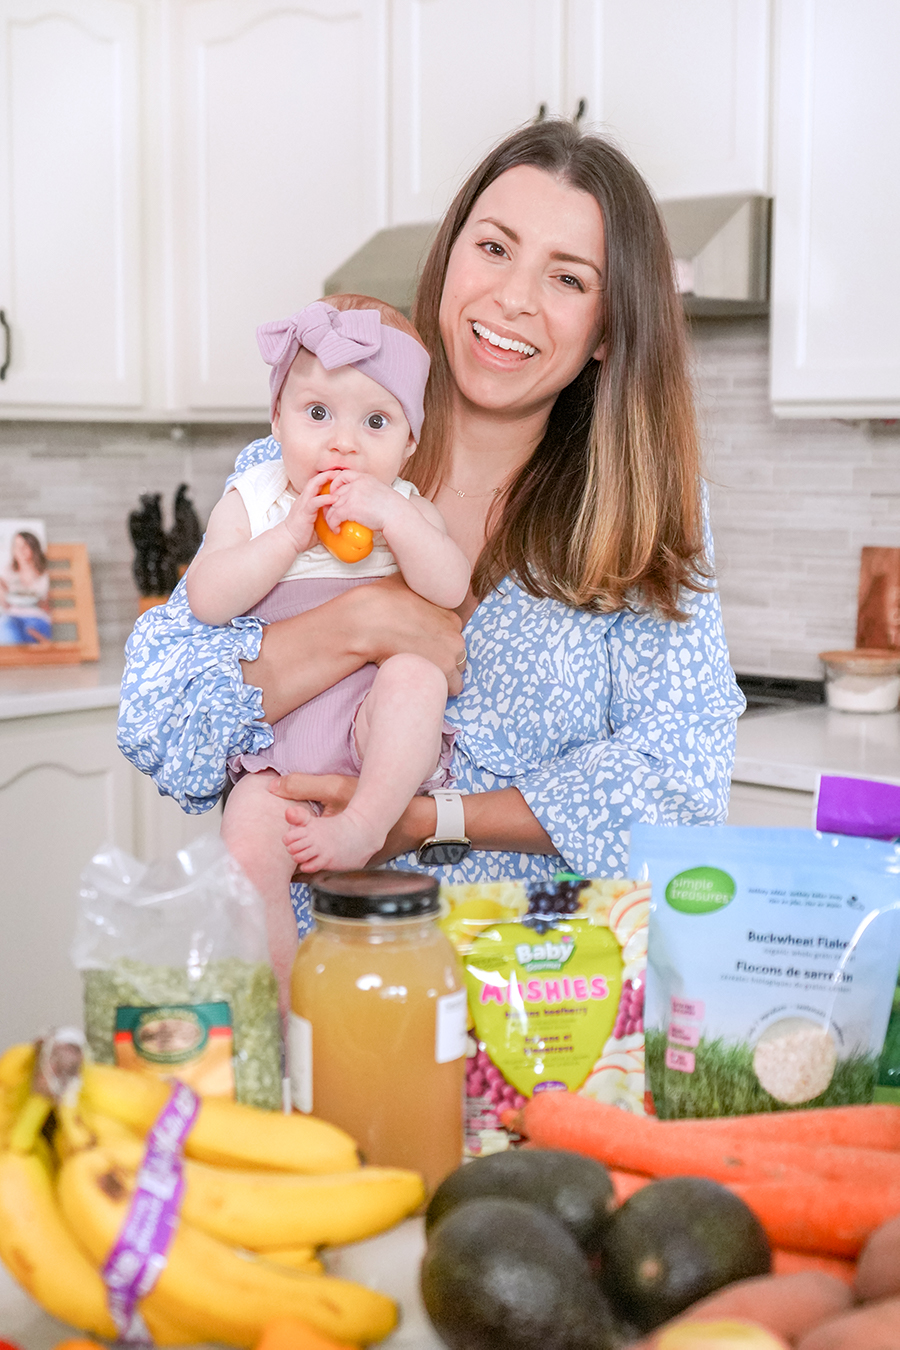 Mom holding baby getting ready for Baby's first foods